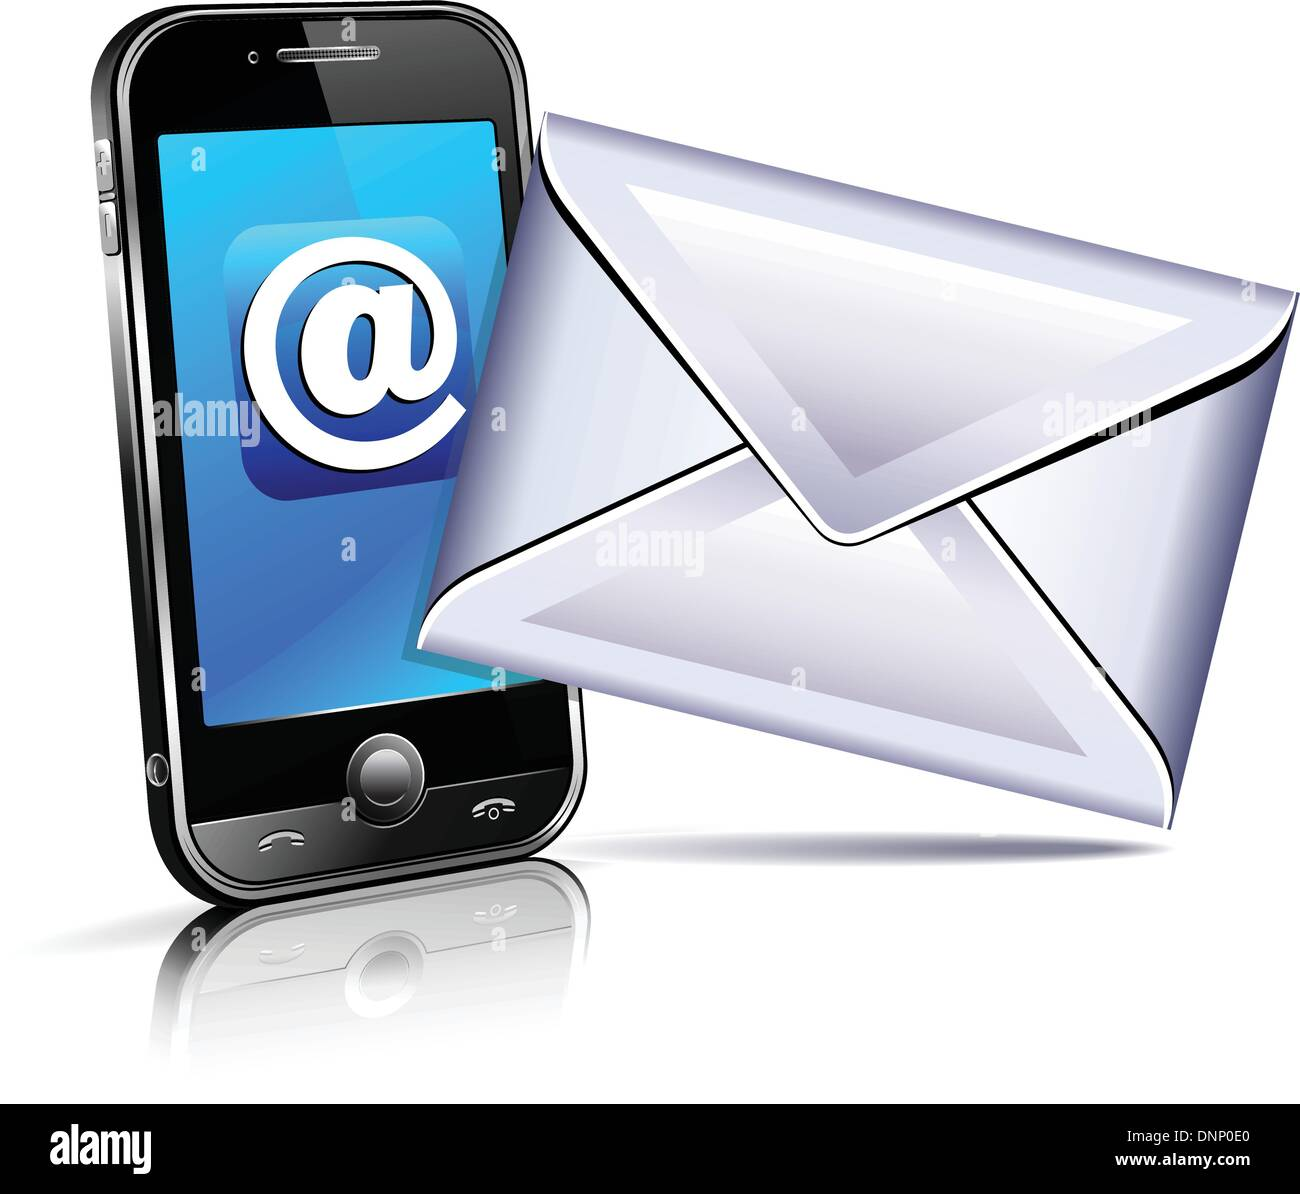 Concept showing email communication by mobile phone - text sms - Stock Image